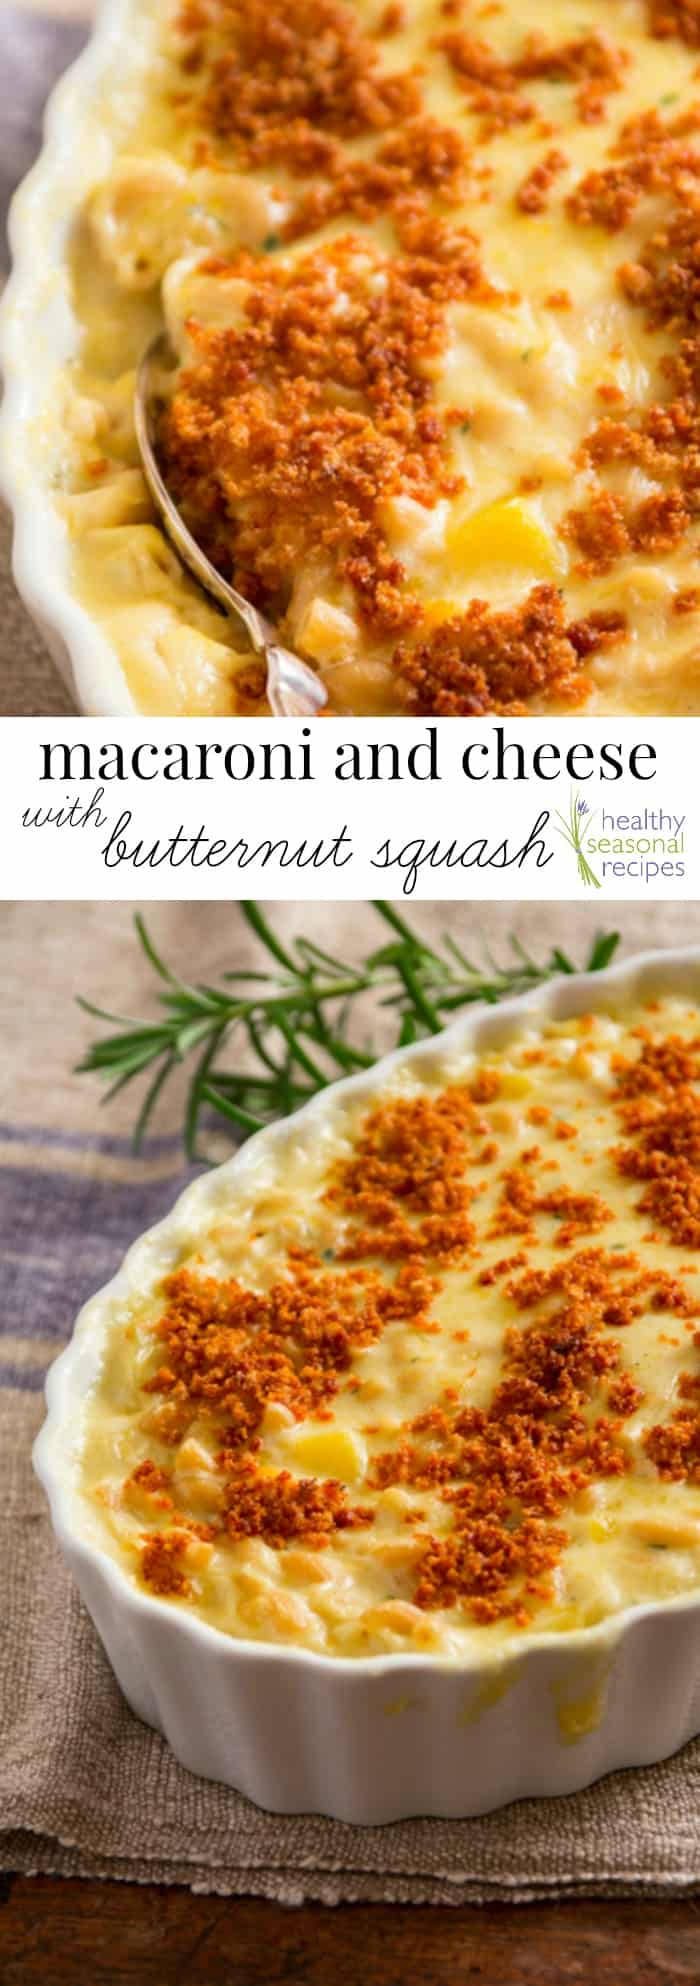 macaroni and cheese with butternut squash - Healthy ...